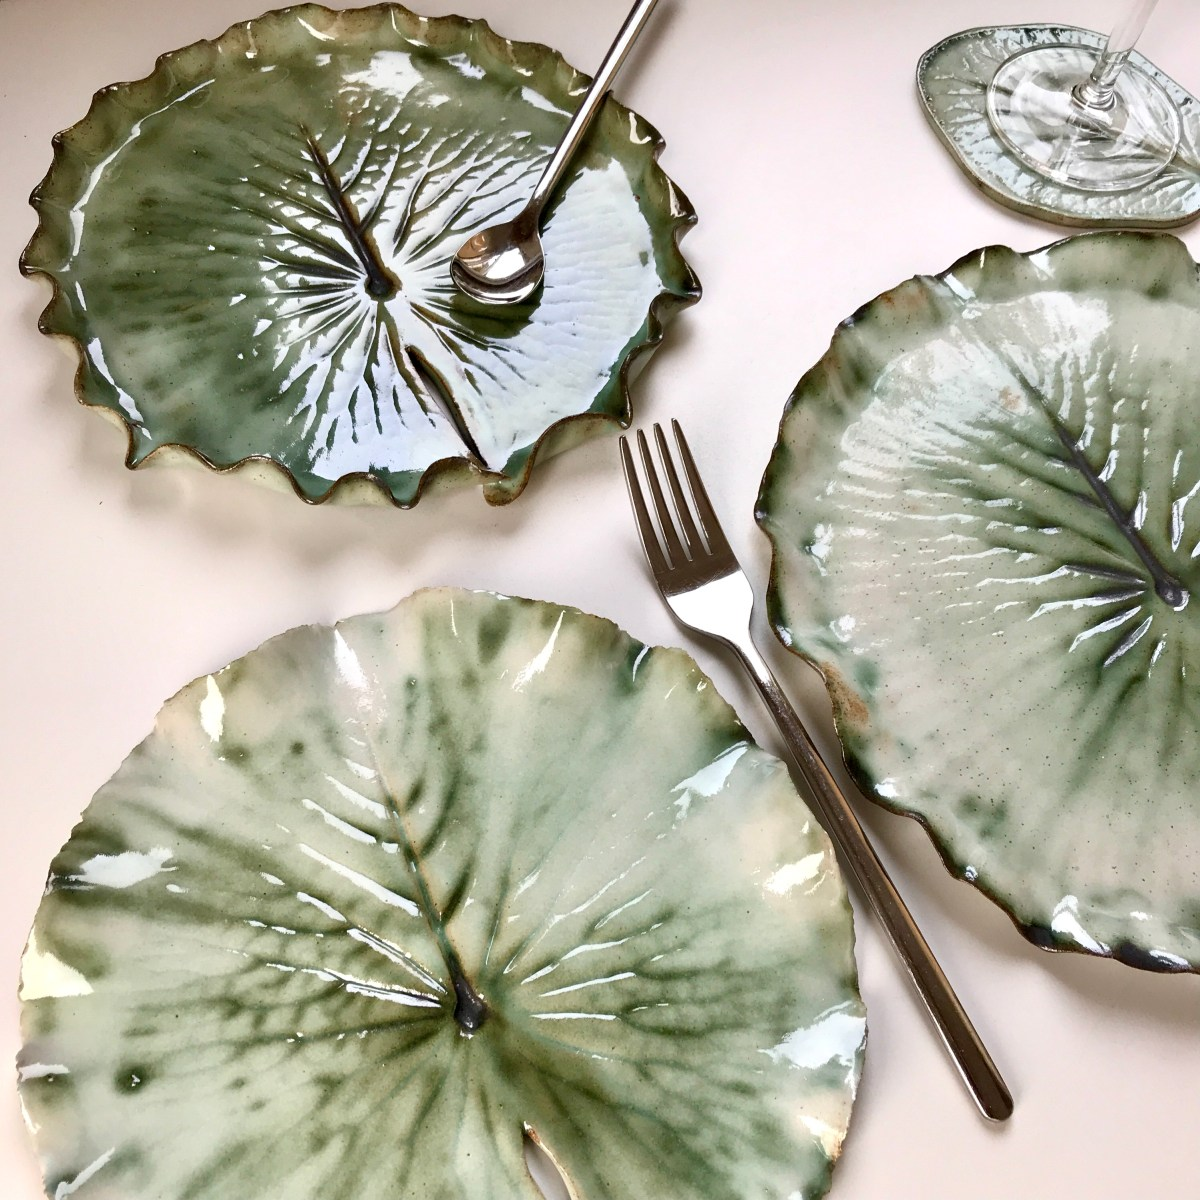 Pond Lily Leaf Tableware by Sonya Ceramic Art (Side Plate in Close View)